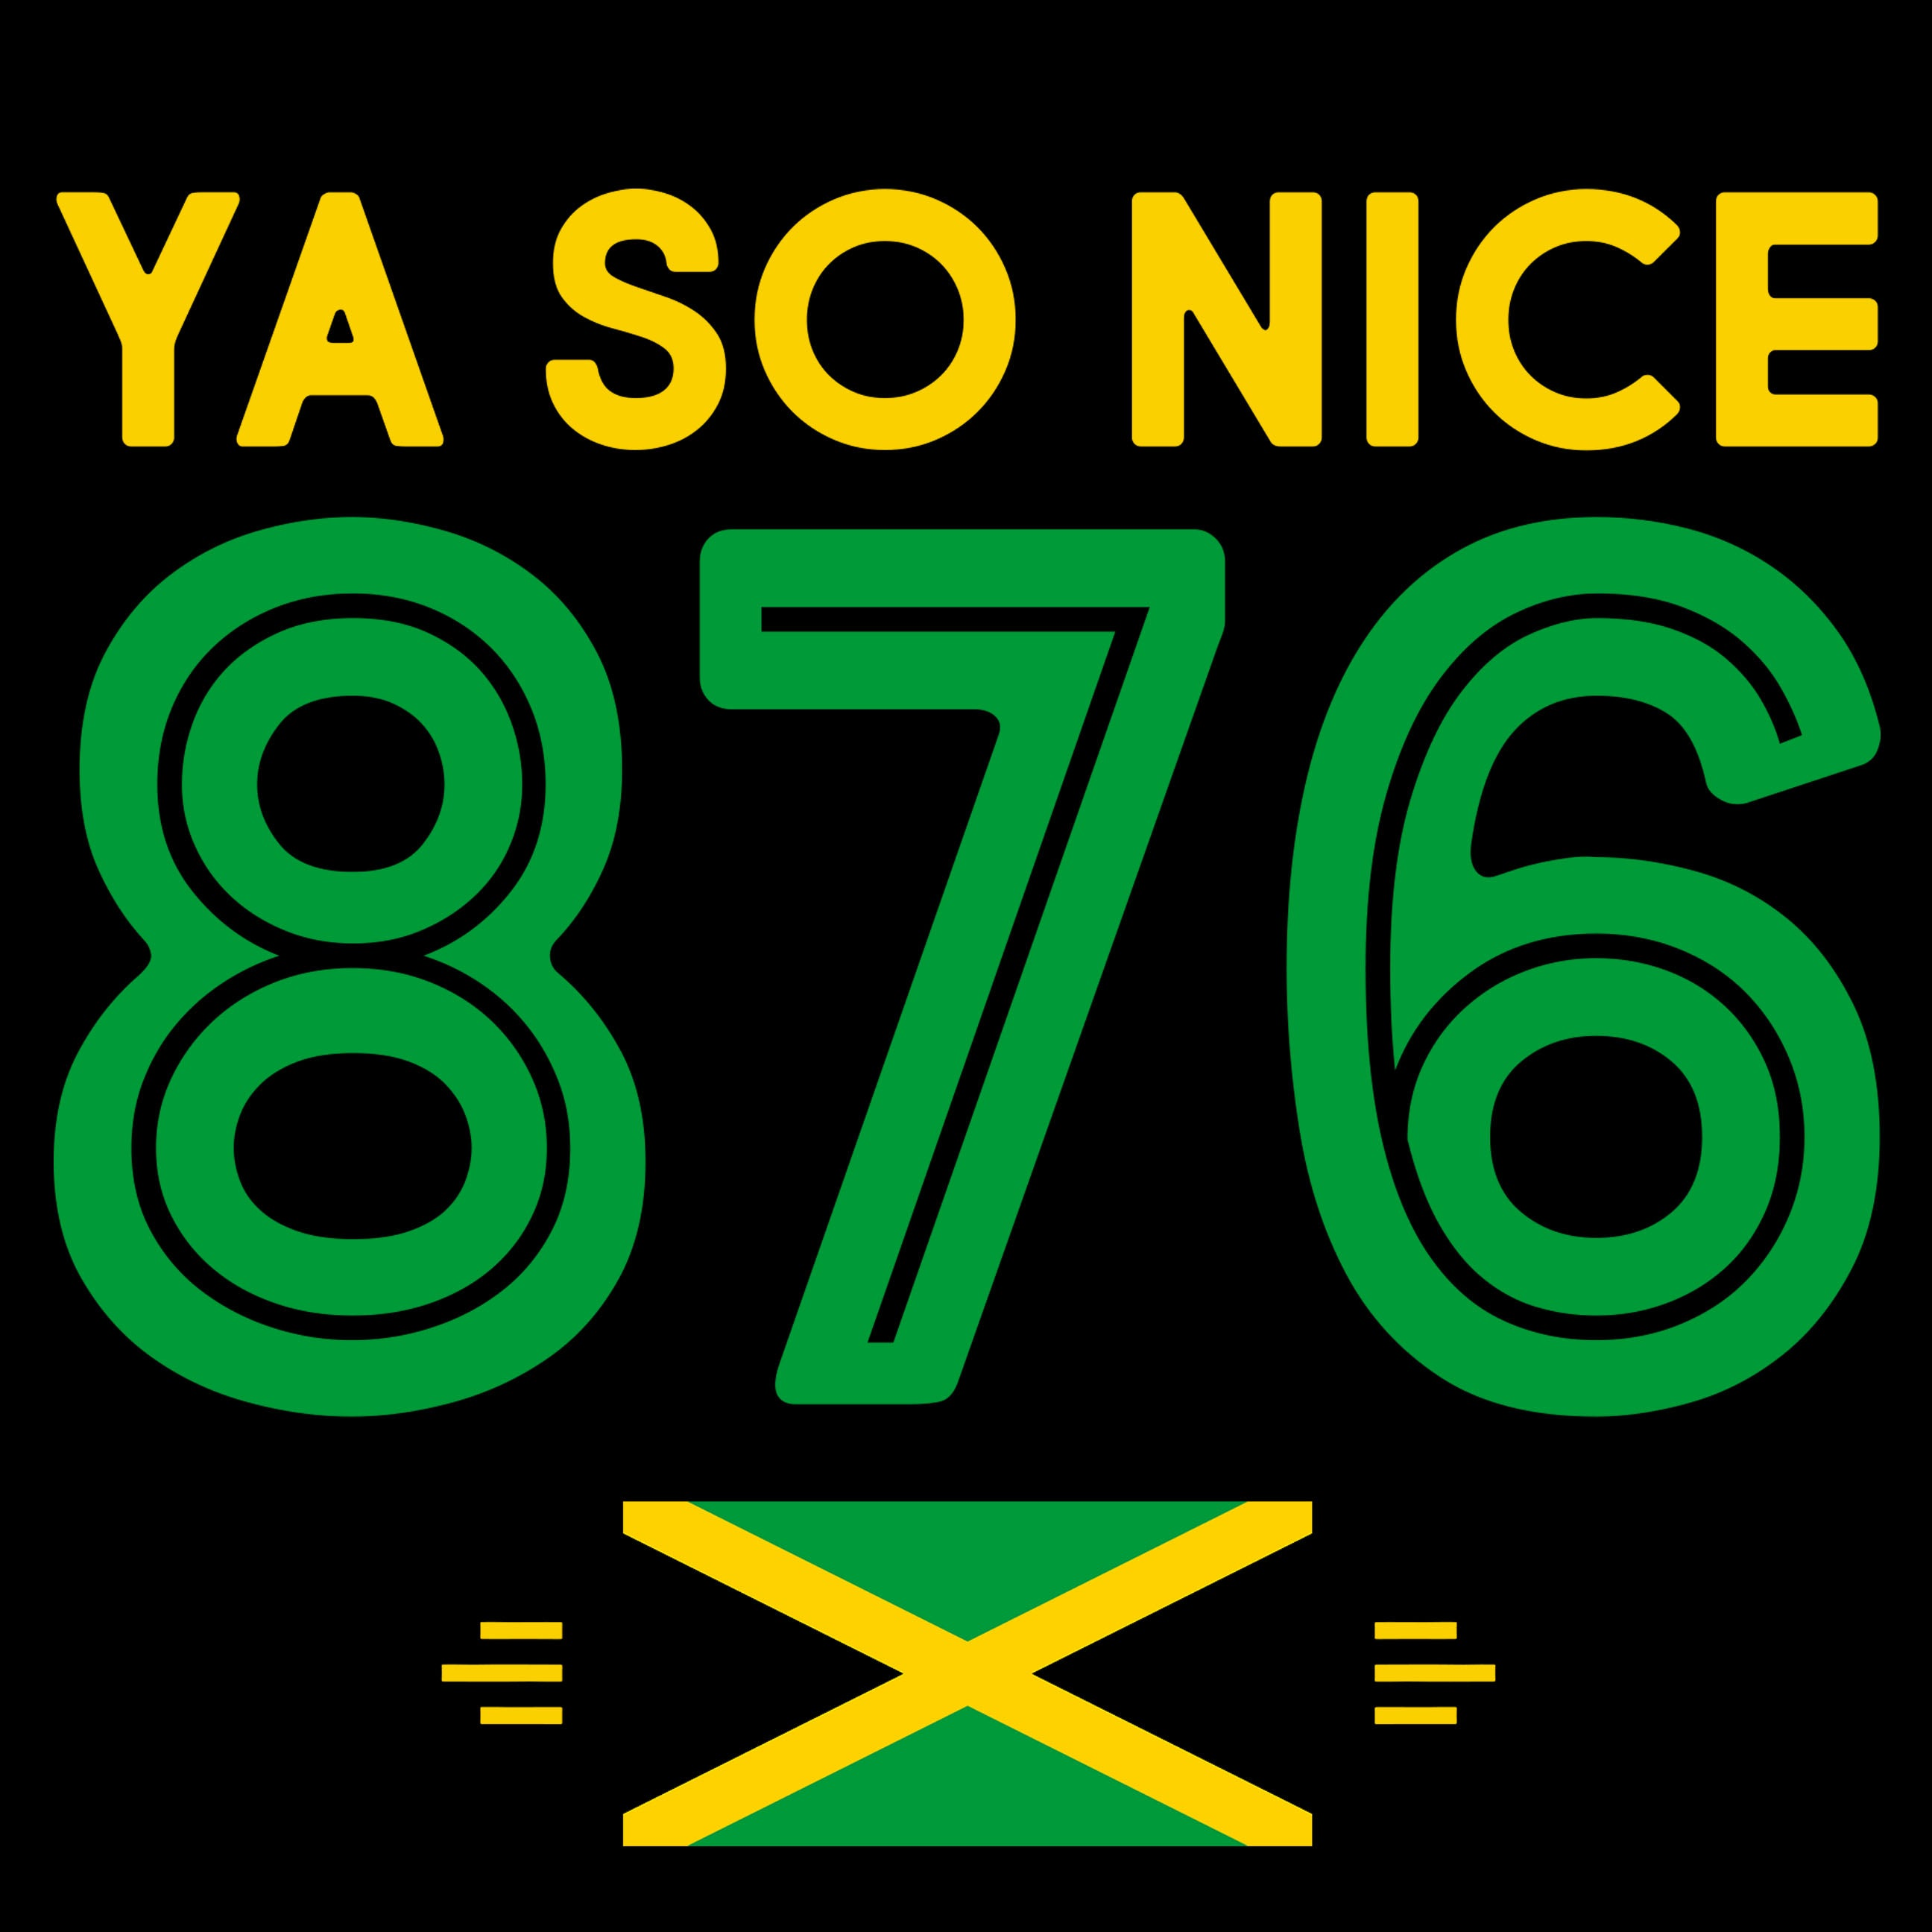 Ya So Nice 876 - Women's Garments